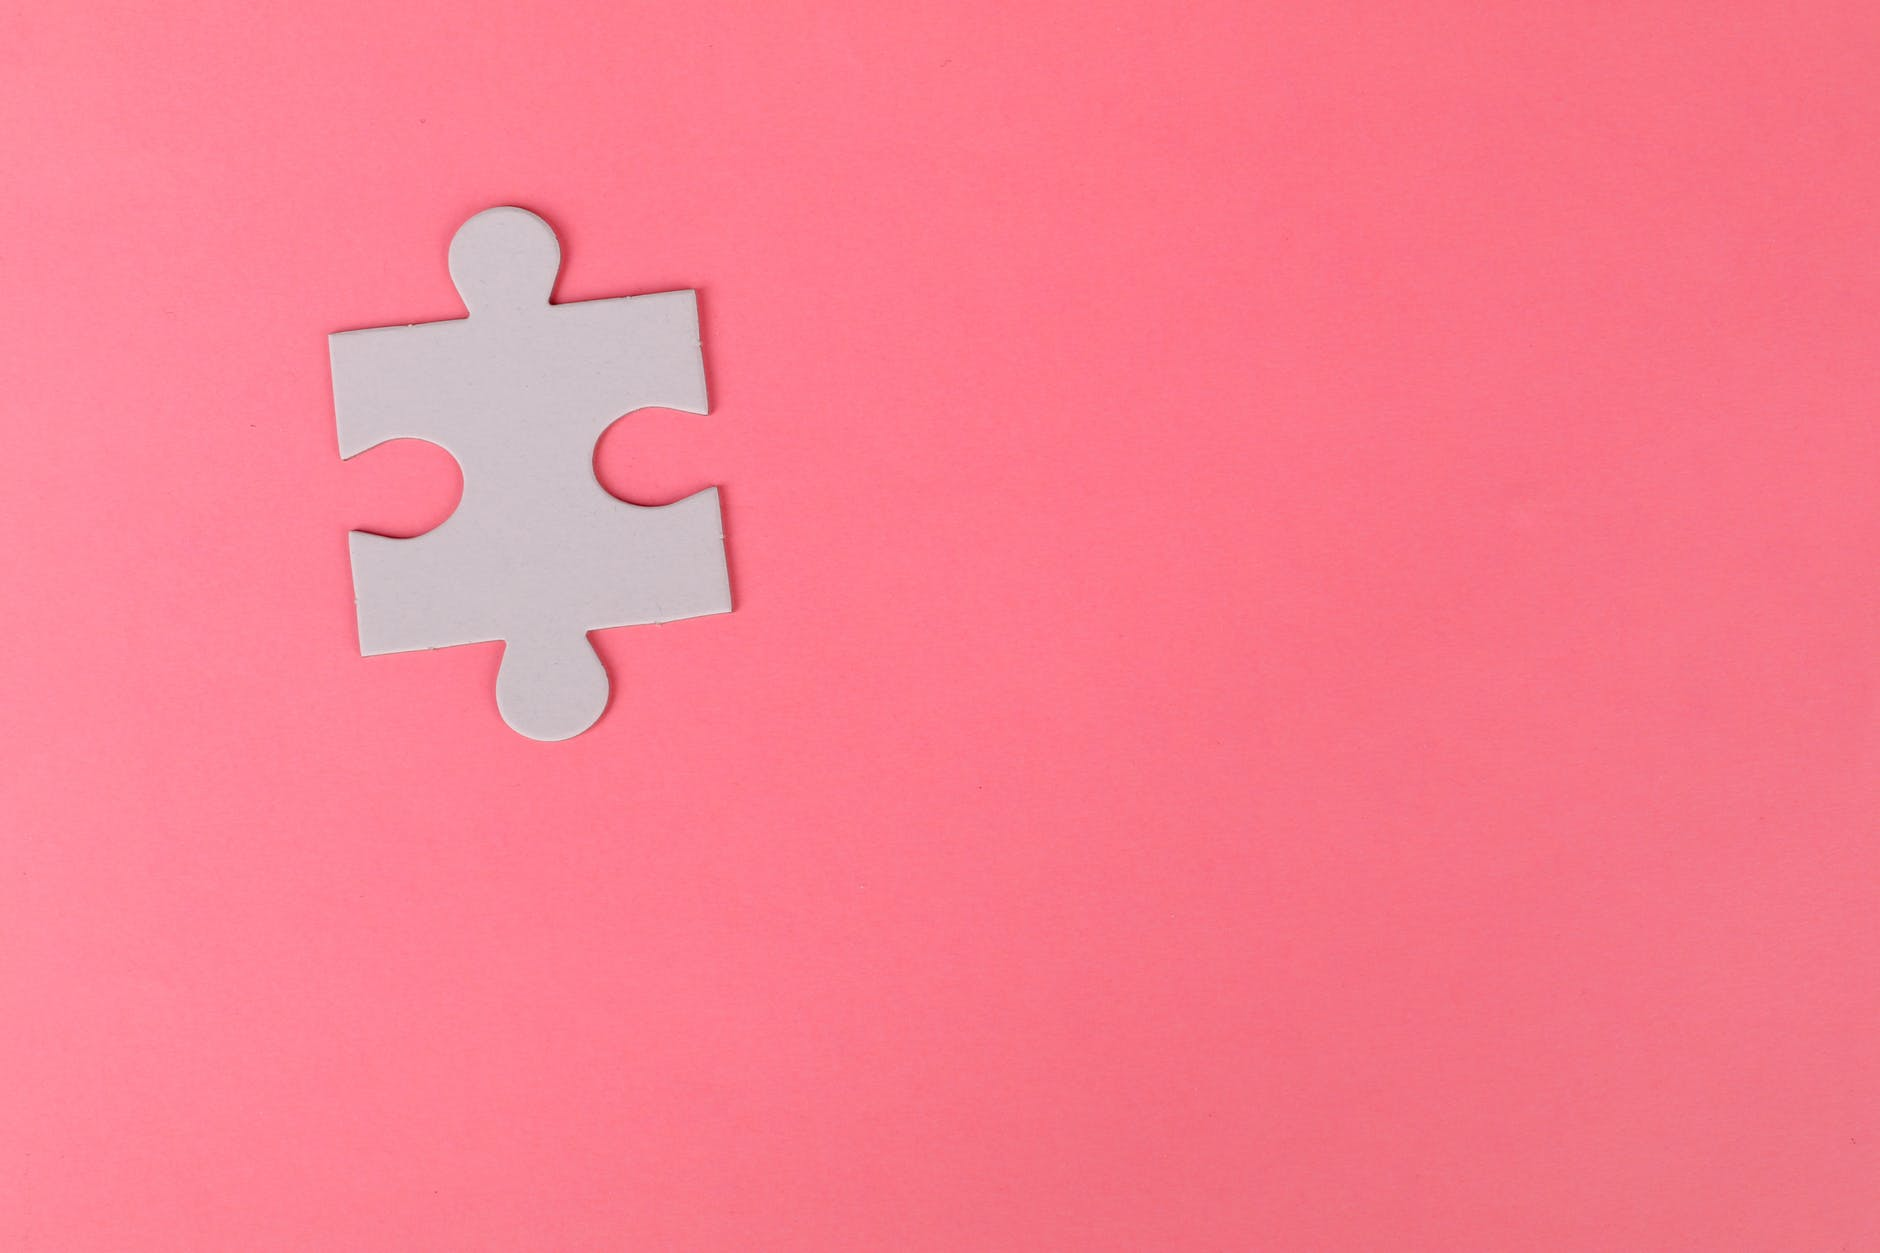 jigsaw puzzle on pink background